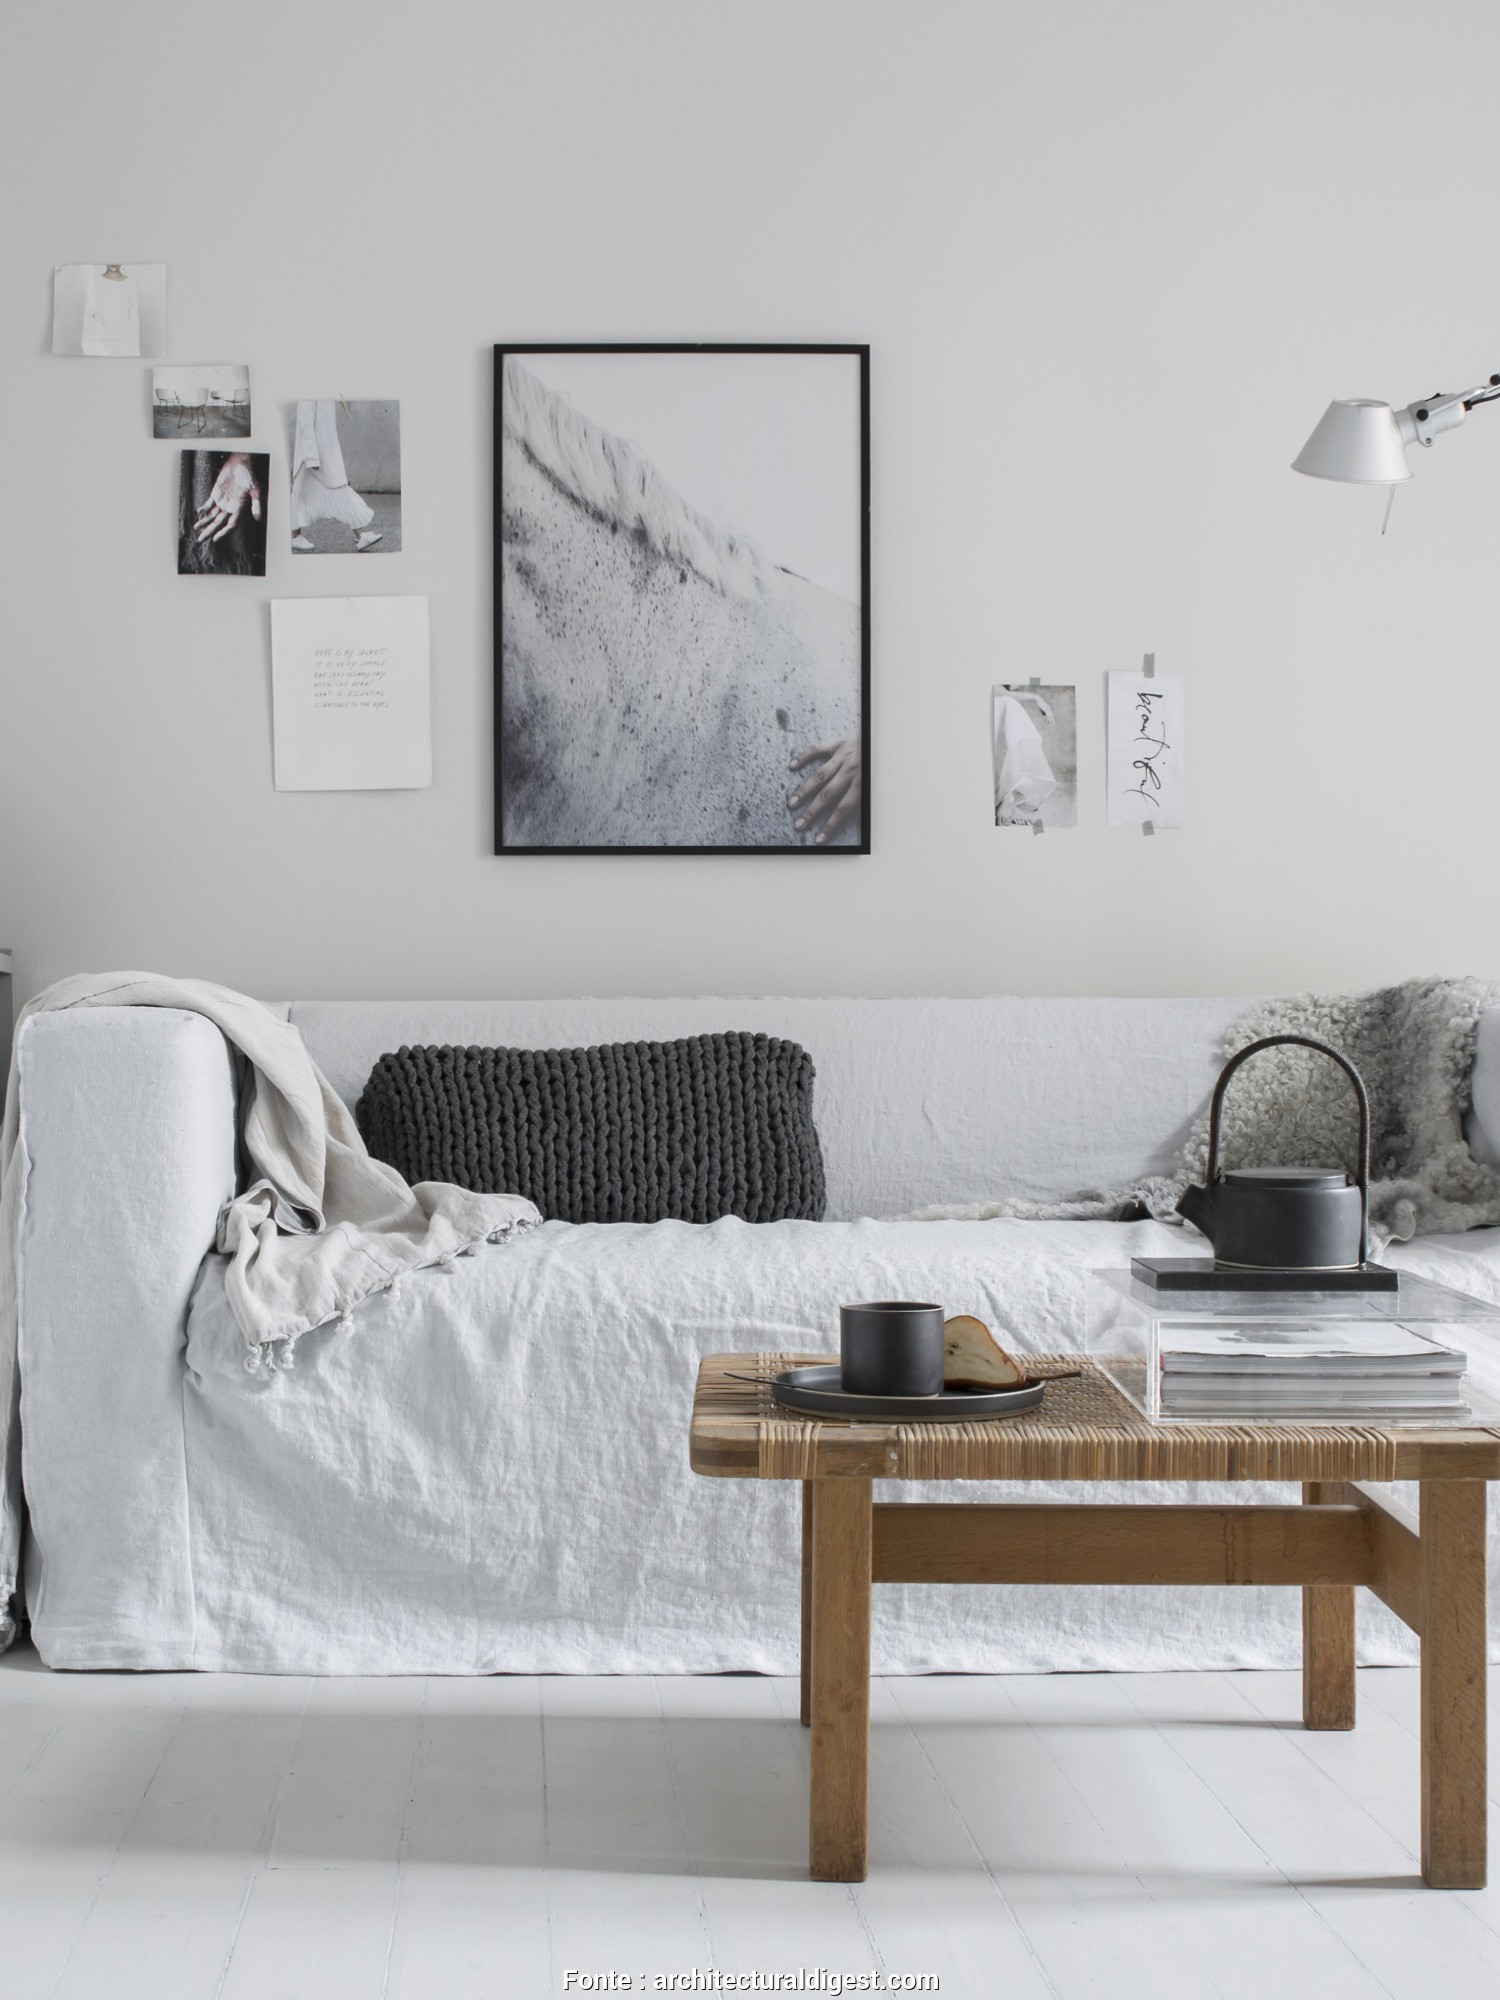 Klippan Ikea France, Rustico The 13 Most Popular IKEA Products, Architectural Digest